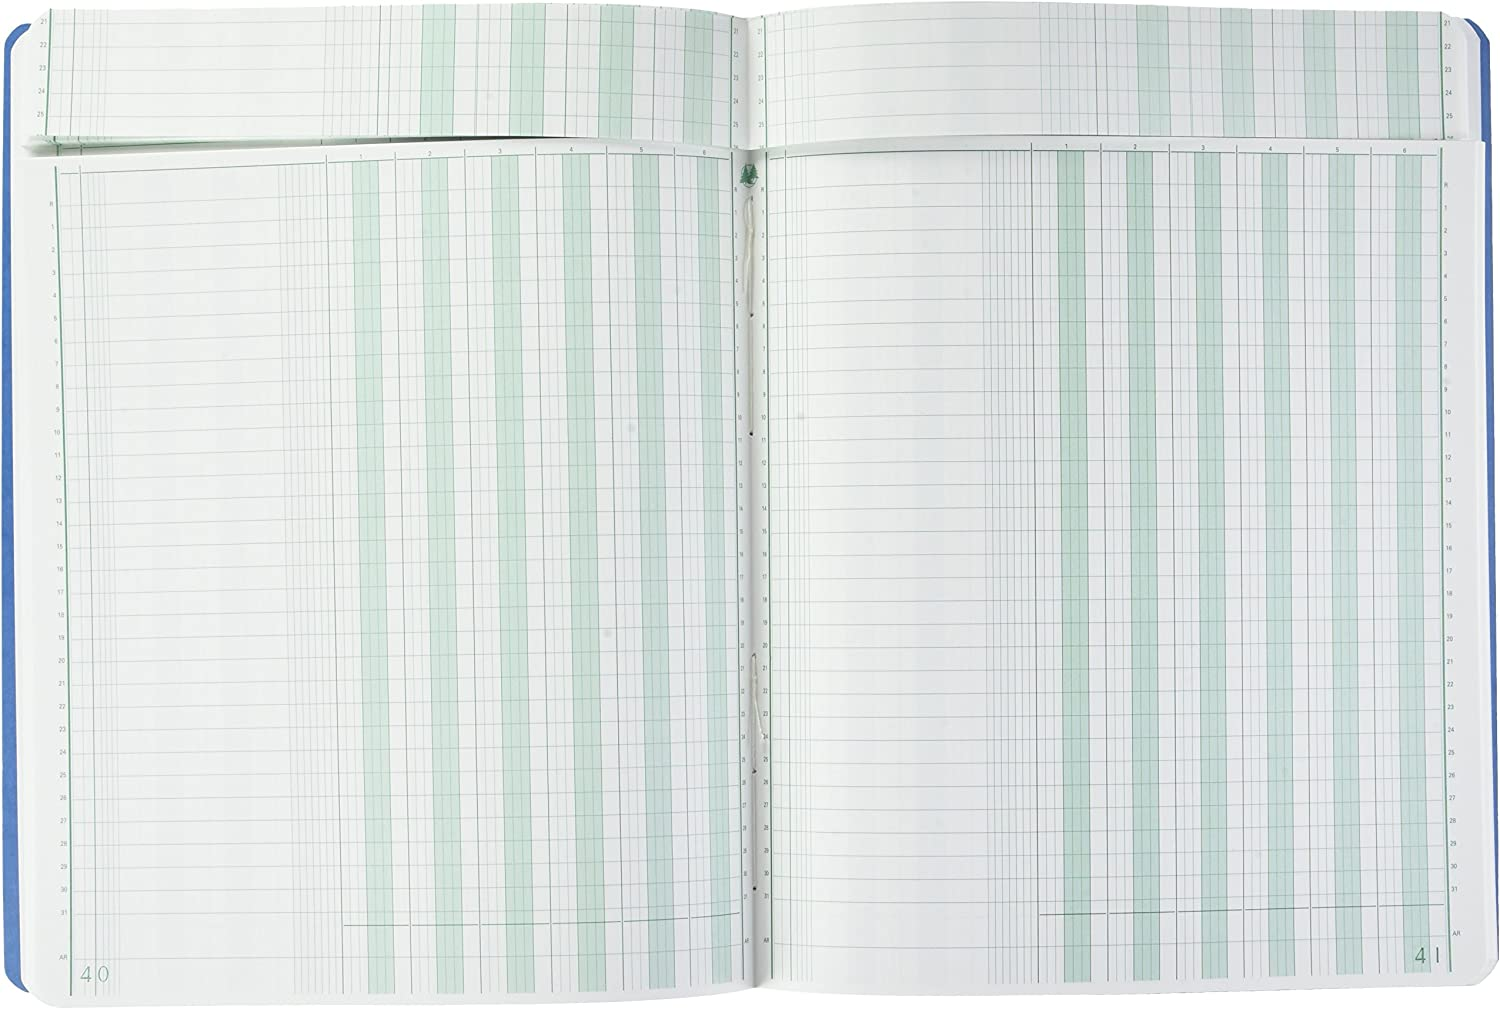 Exacompta Paresseuse Head 14060be Notebook with 80/Sheets Blue 32/x 25/cm